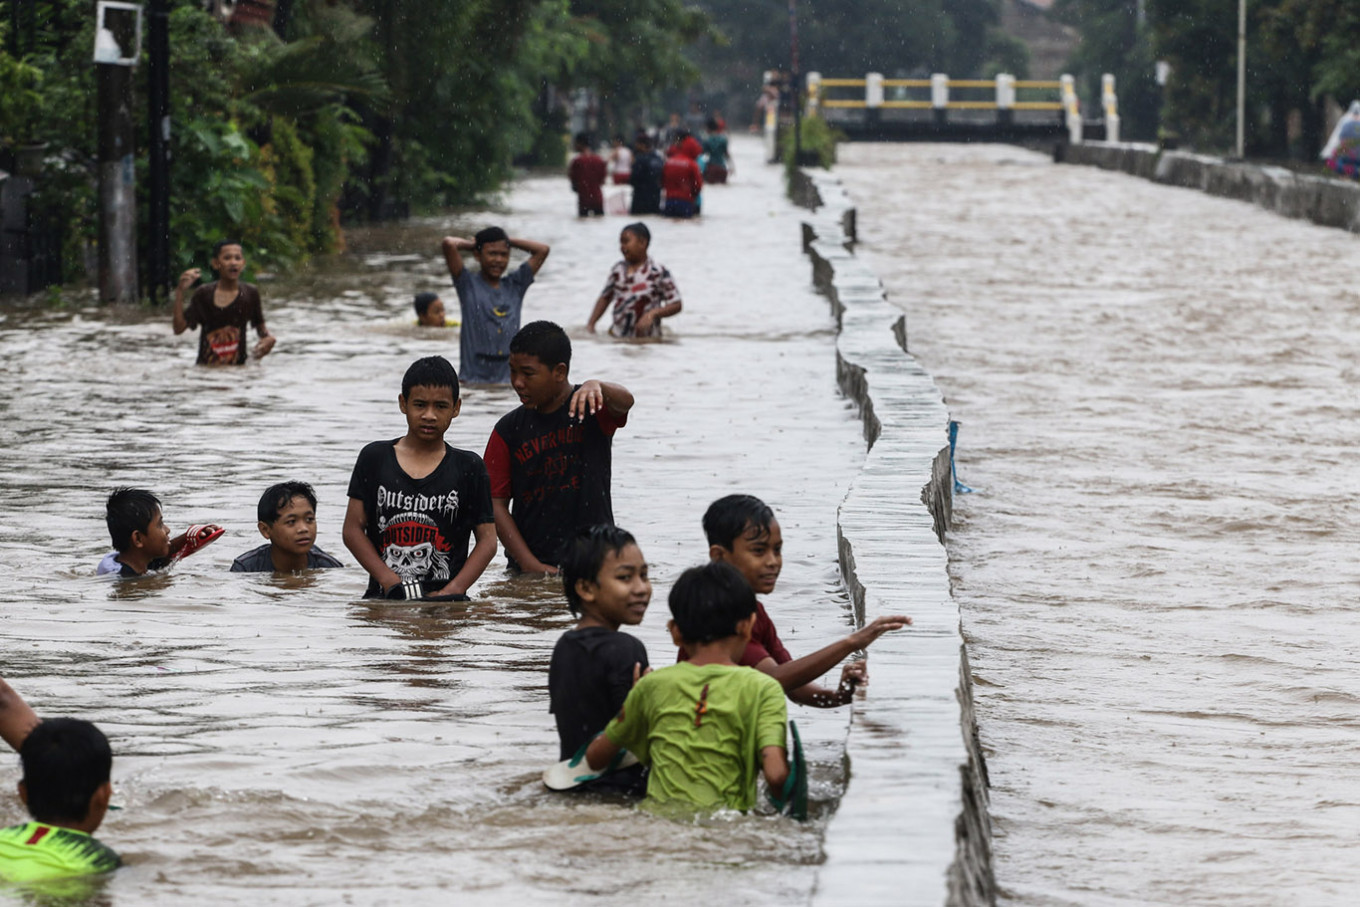 PLN cuts power to flood-affected areas over safety concerns